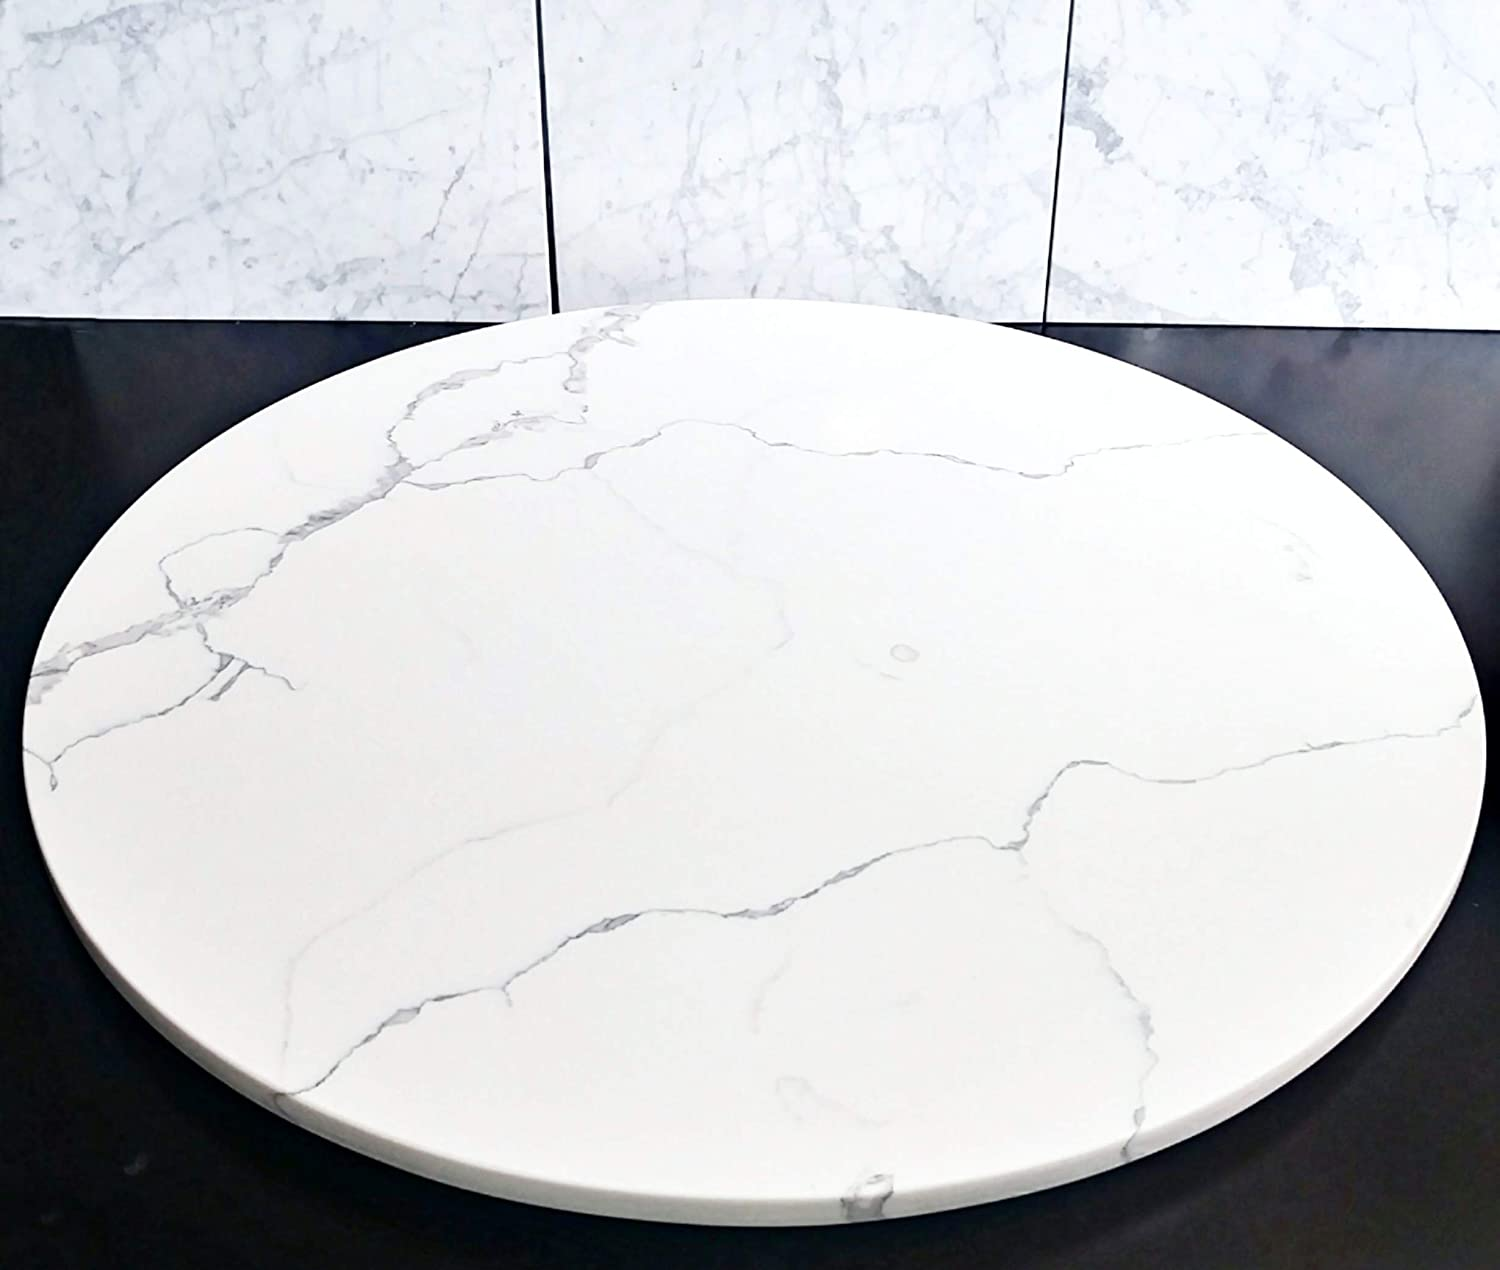 Handmade Products 36 Inch Quartz Marble Lazy Susan Turntable Rotating Tray Dining Table Holiday Centerpiece Large Serving Dishes